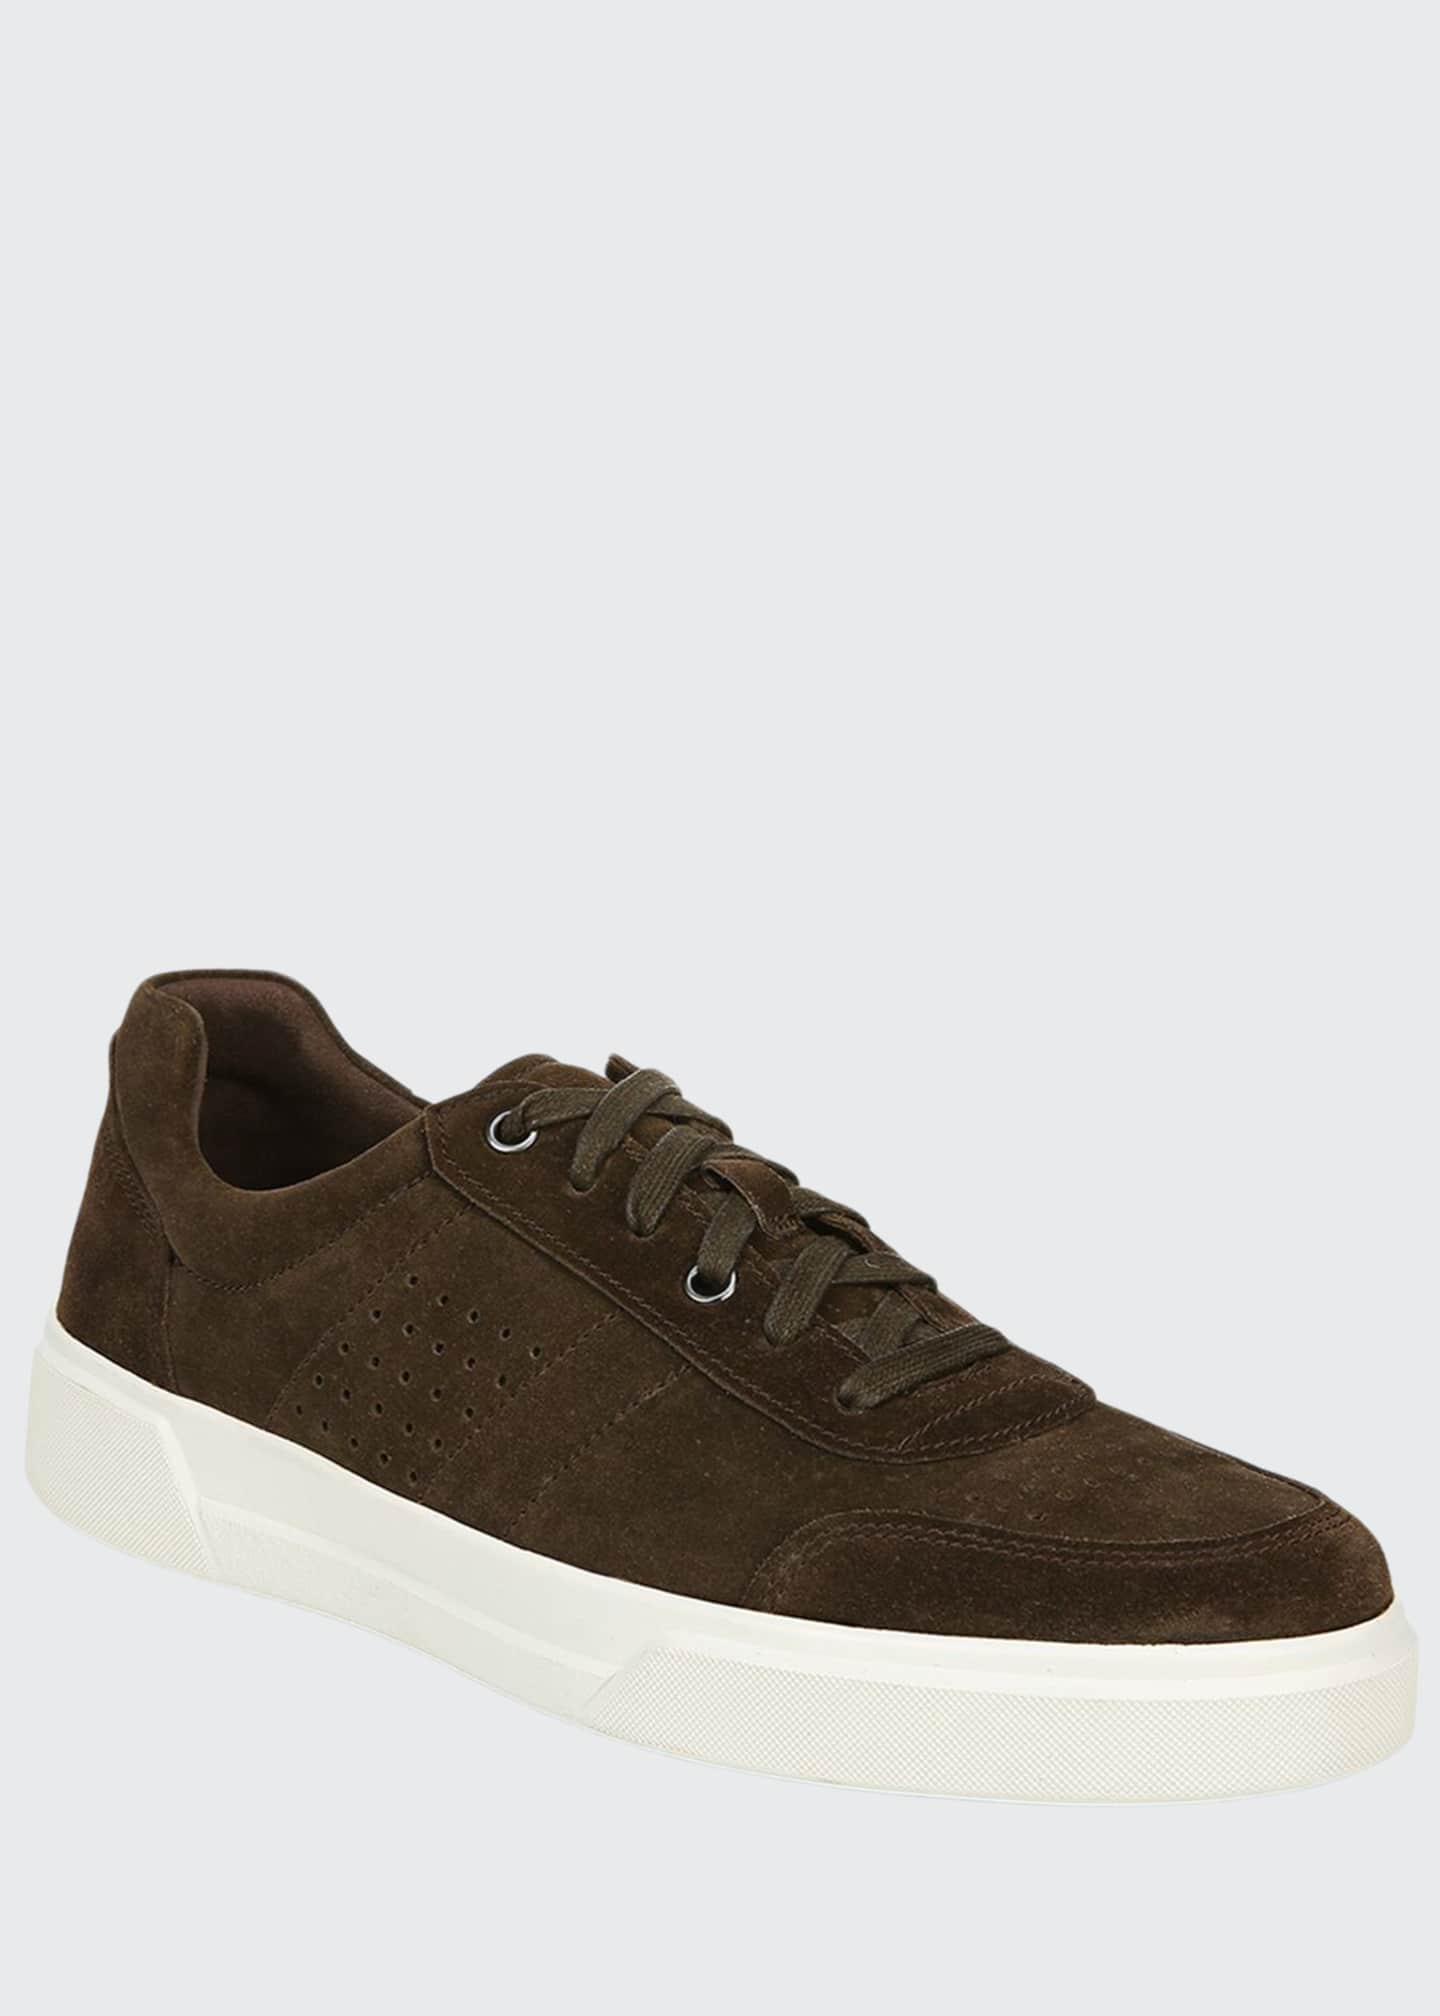 Image 1 of 4: Men's Barnett Perforated Suede Low-Top Sneakers